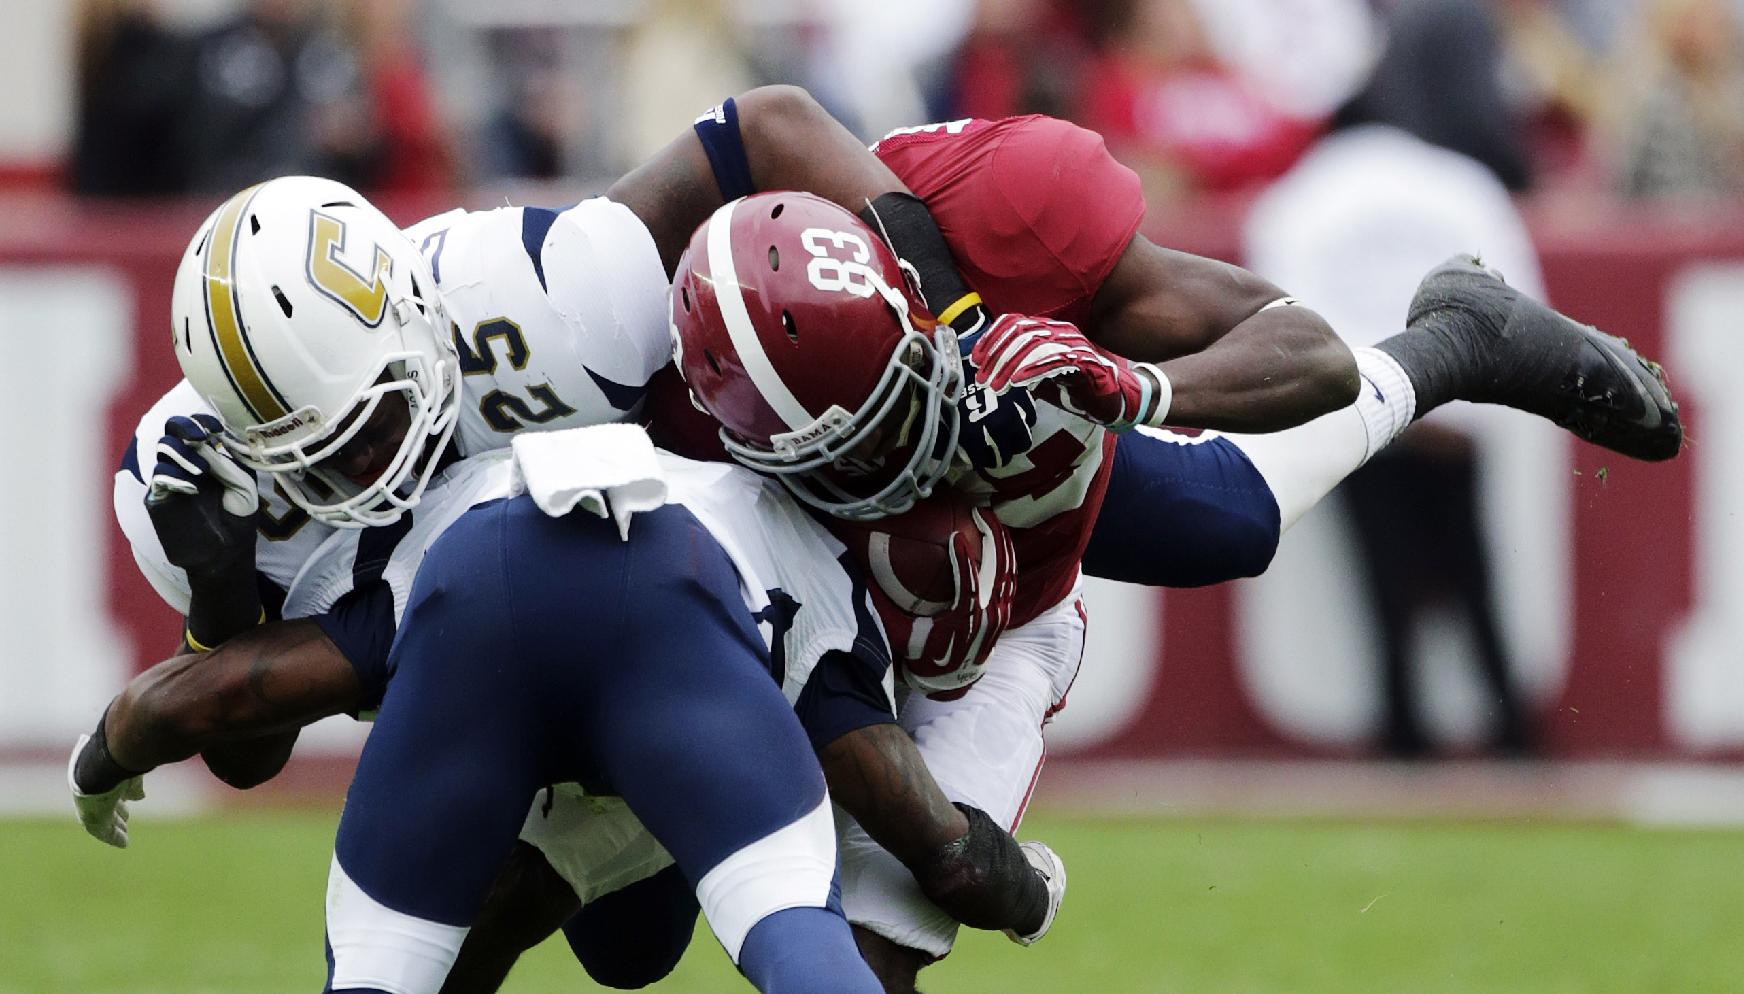 Chattanooga linebacker Wes Dothard (25) and defensive back Chaz Moore, bottom, stop Alabama wide receiver Kevin Norwood (83) during the first half of an NCAA college football game in Tuscaloosa, Ala., Saturday, Nov. 23, 2013